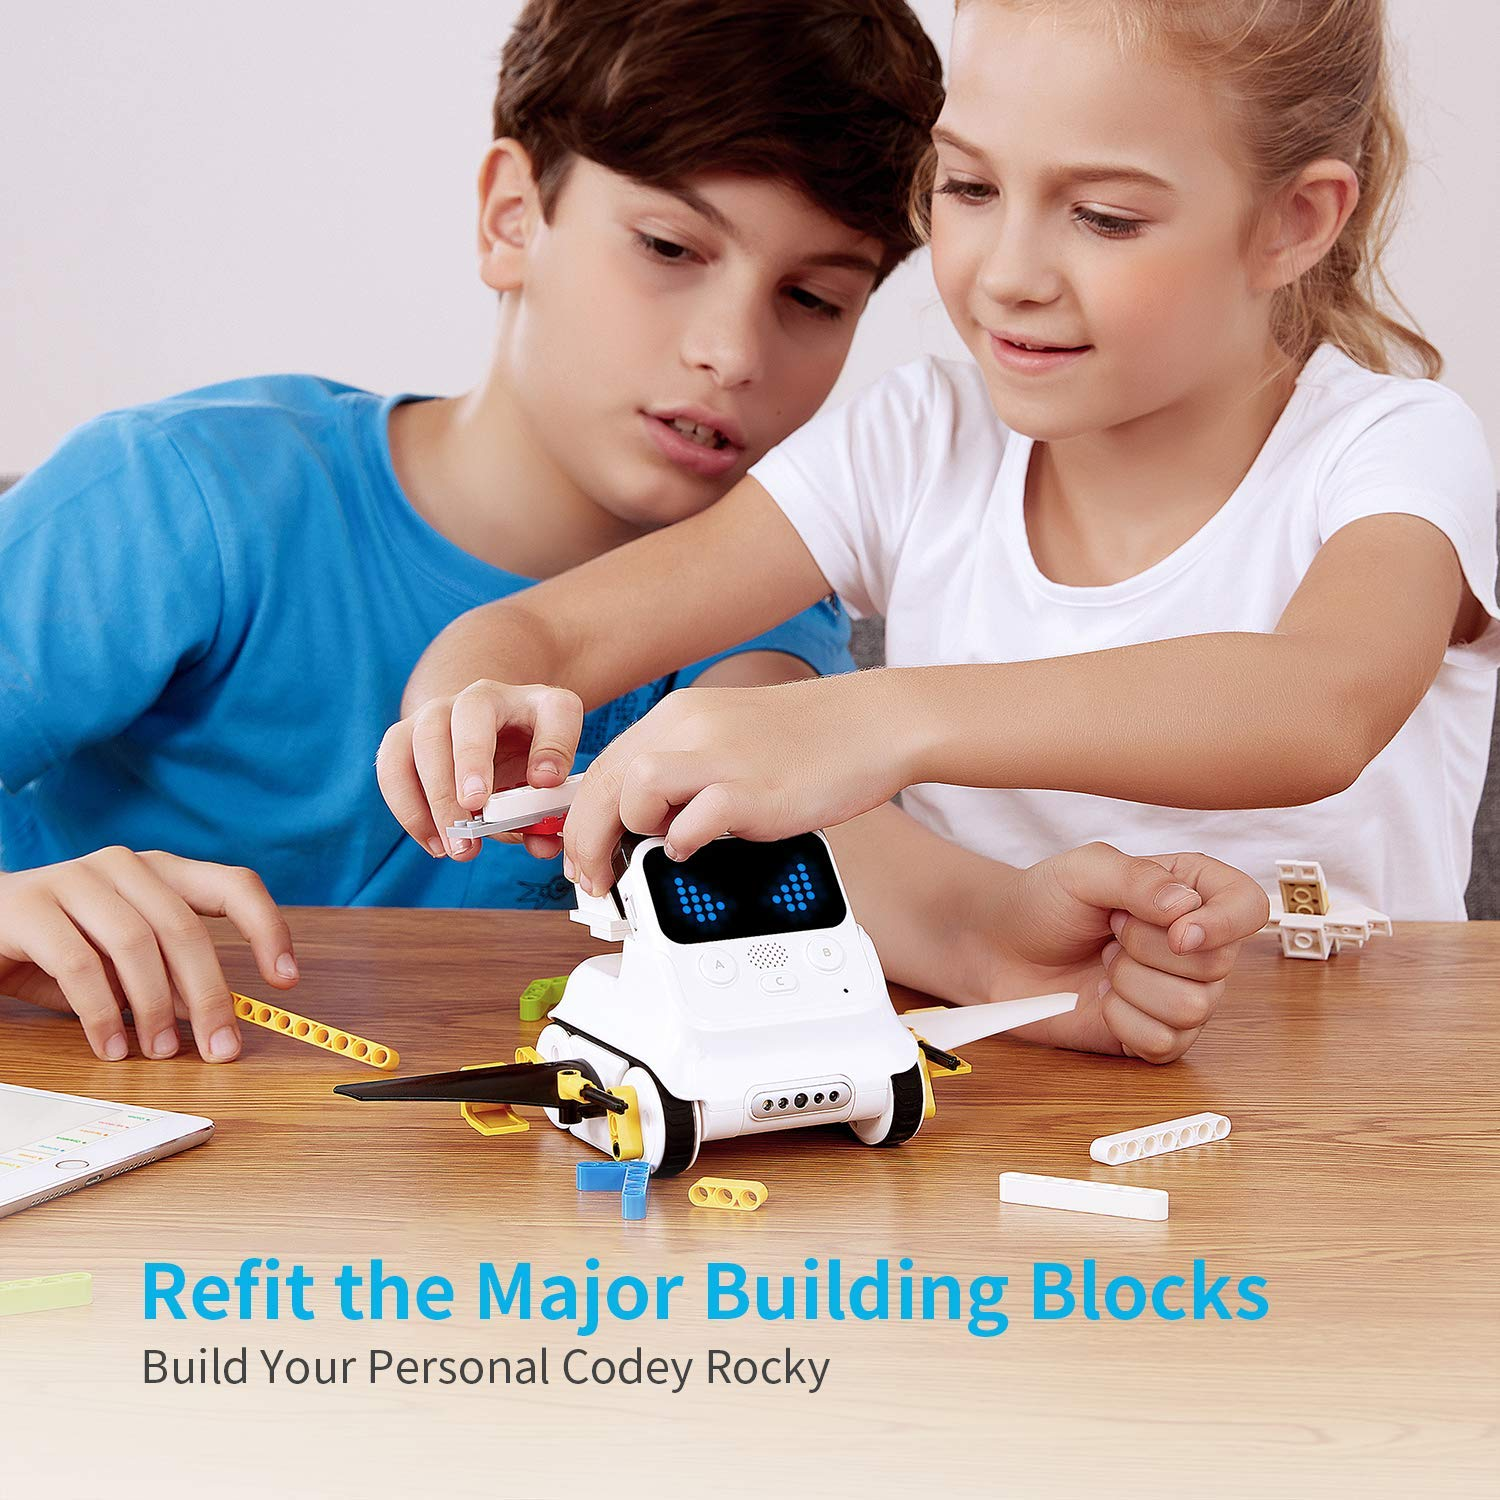 Makeblock Codey Rocky Programmable Robot Ages 6+, Fun Toys Gift to